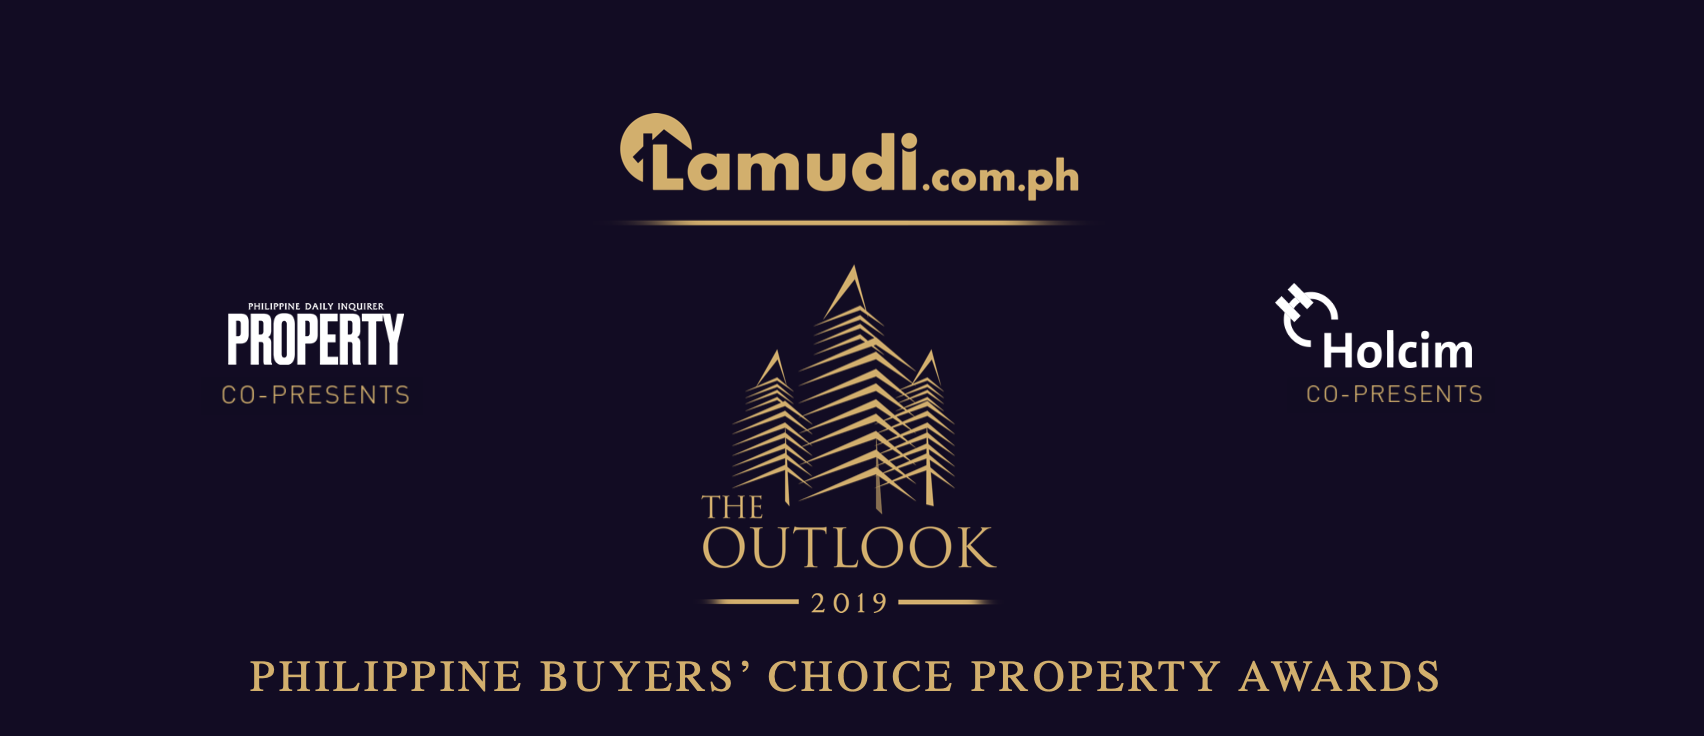 LAMUDI THE OUTLOOK 2019 philippine buyer's choice property awards